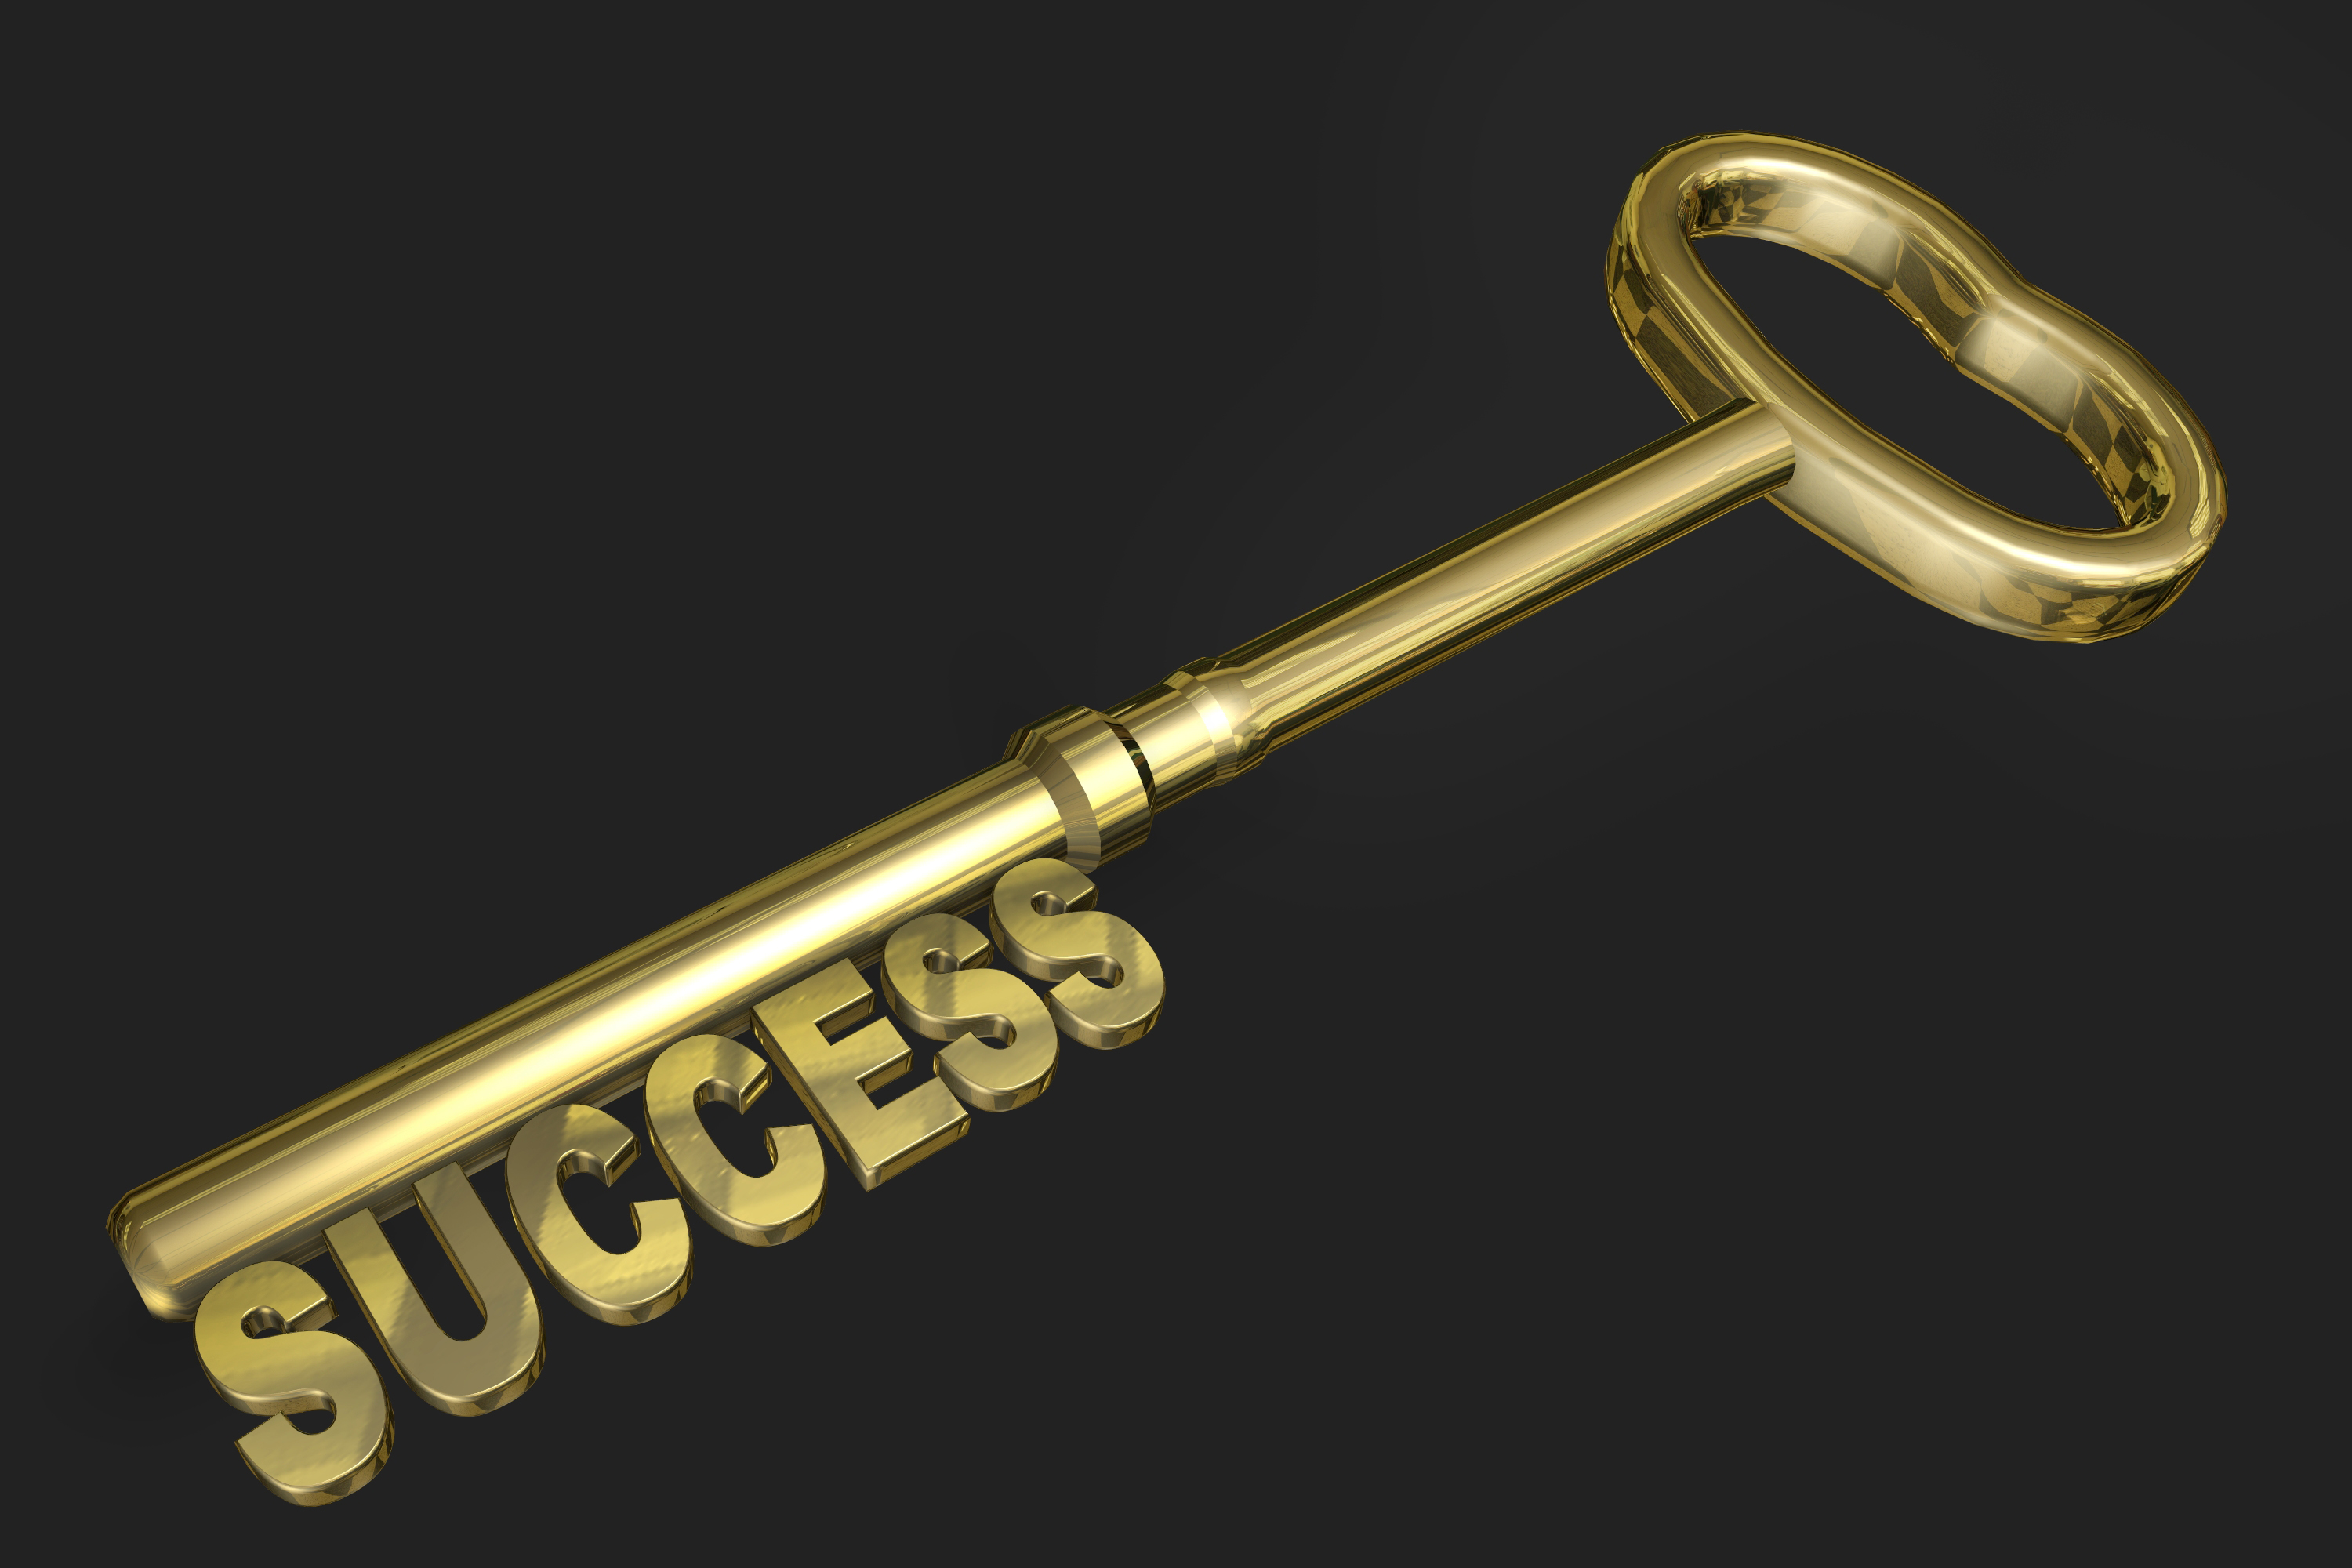 Success Golden Key - Public Domain image courtesy Animated Heaven on Flickr